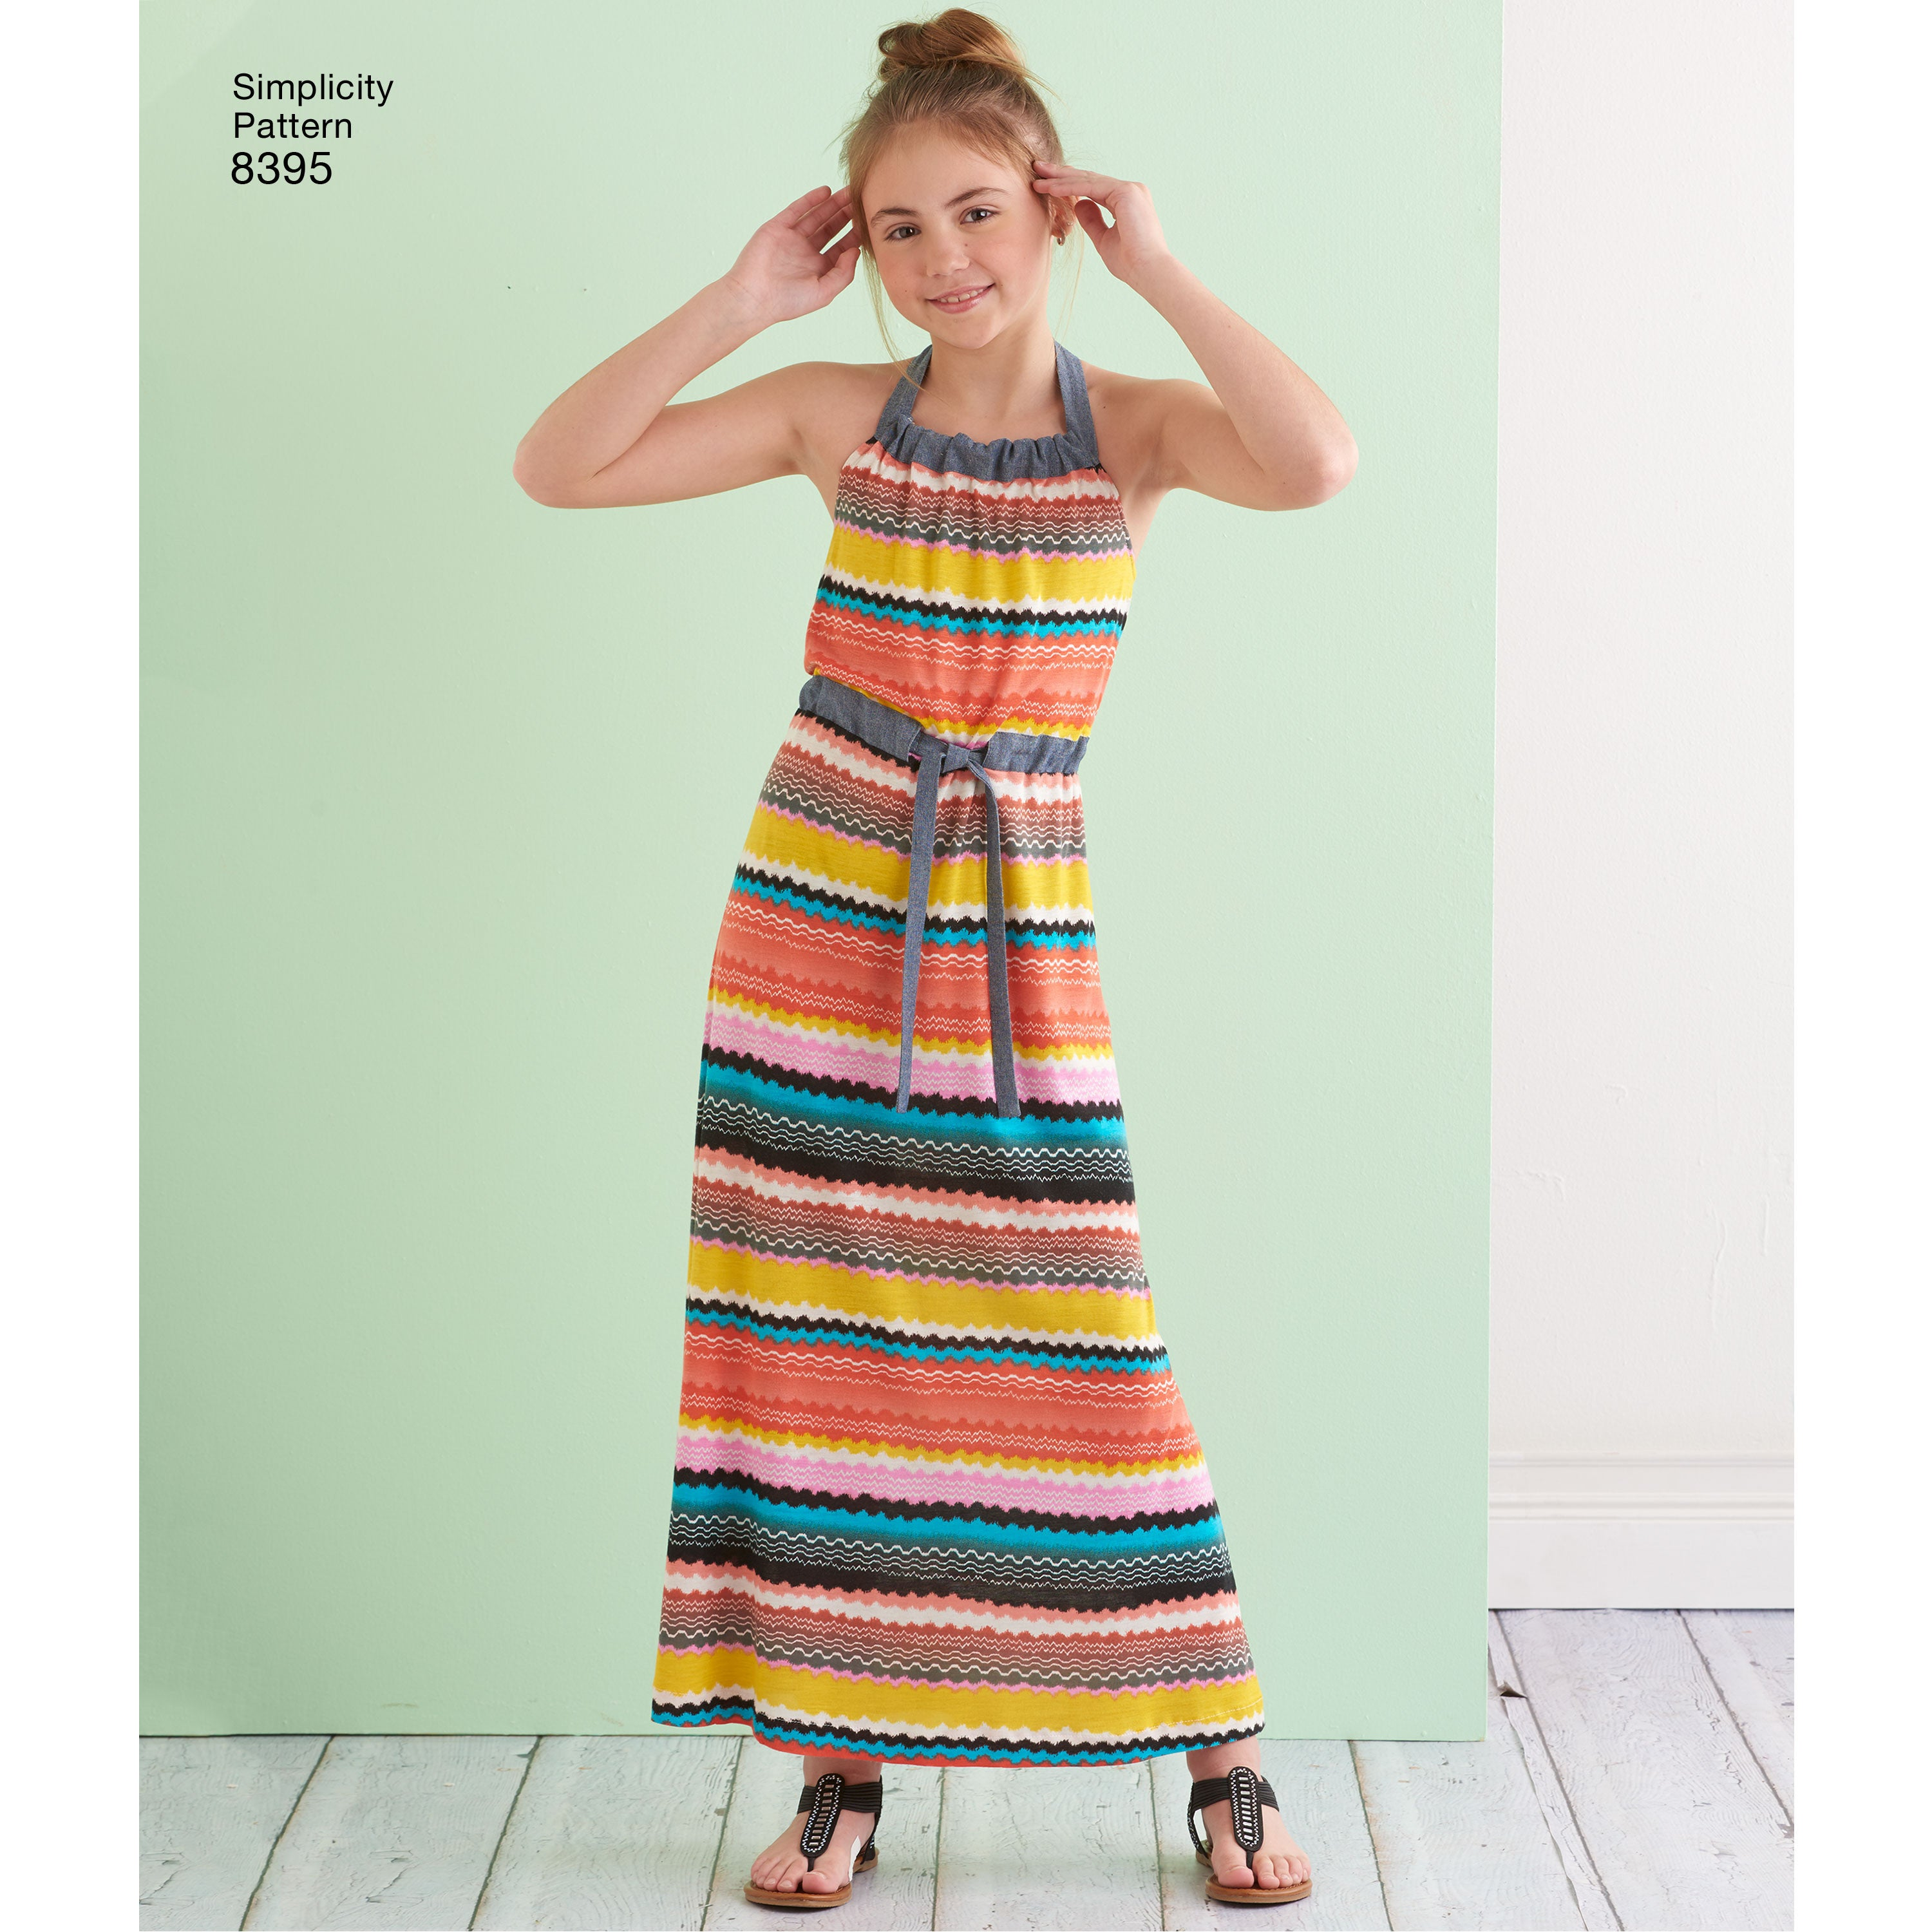 7 to 14 girls Halter Dress Pattern by Simplicity